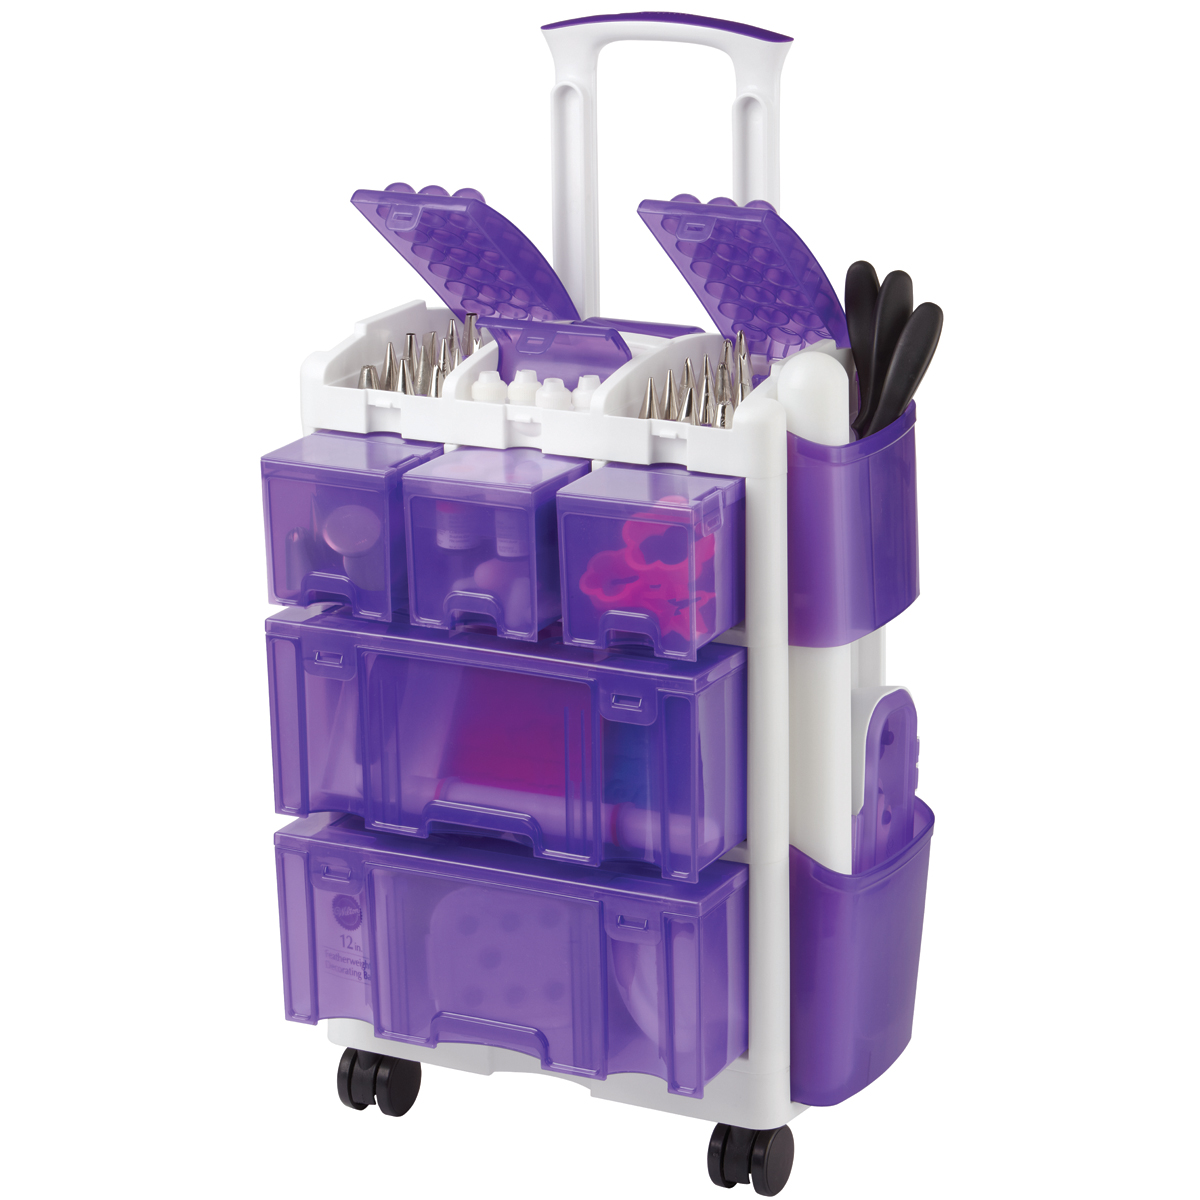 "Wilton 10""x14.2""x22.5"" Ultimate Rolling Tool Caddy, White & Purple 409-3078"